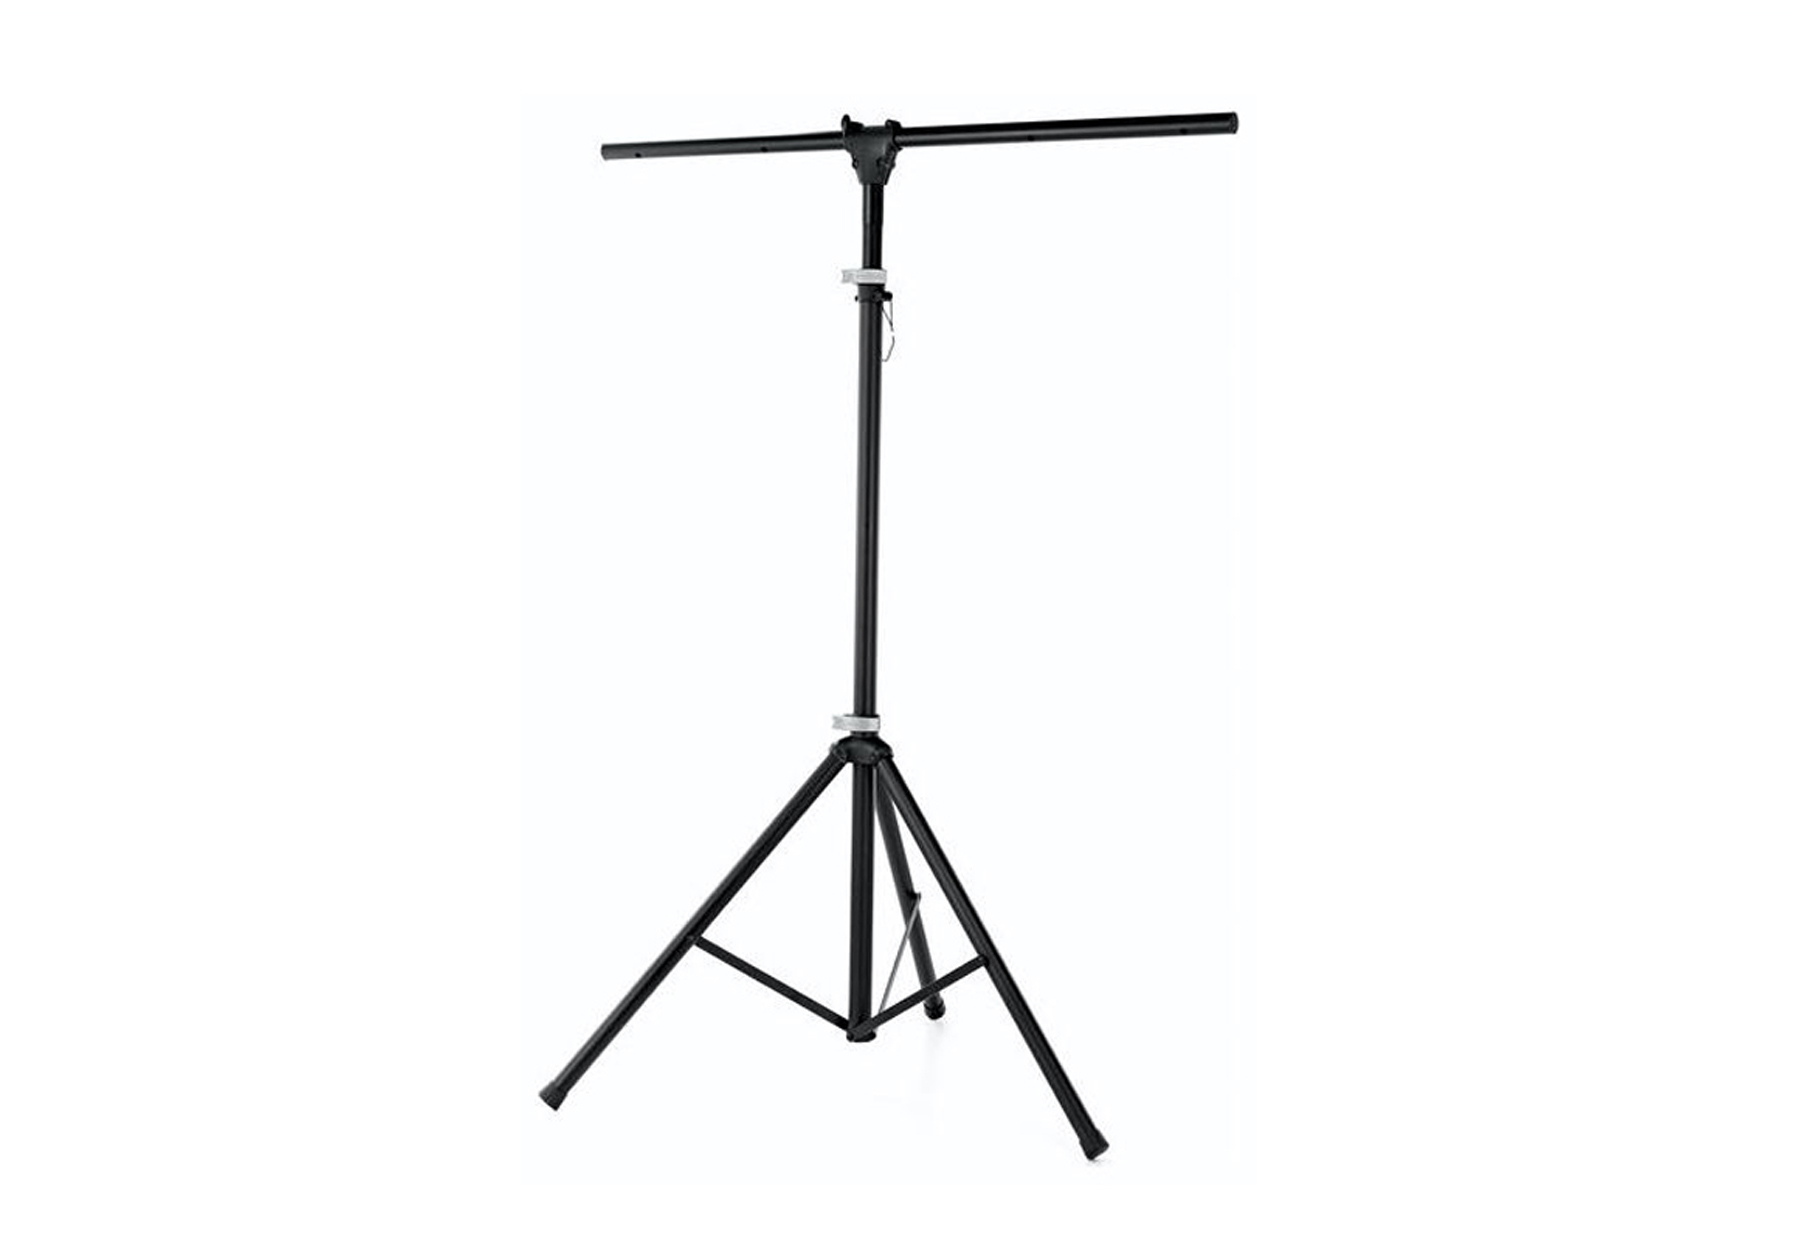 Hire lighting t-bar stands in Cardiff, Swansea, Newport, Carmarthenshire, Pembrokeshire & South West Wales.